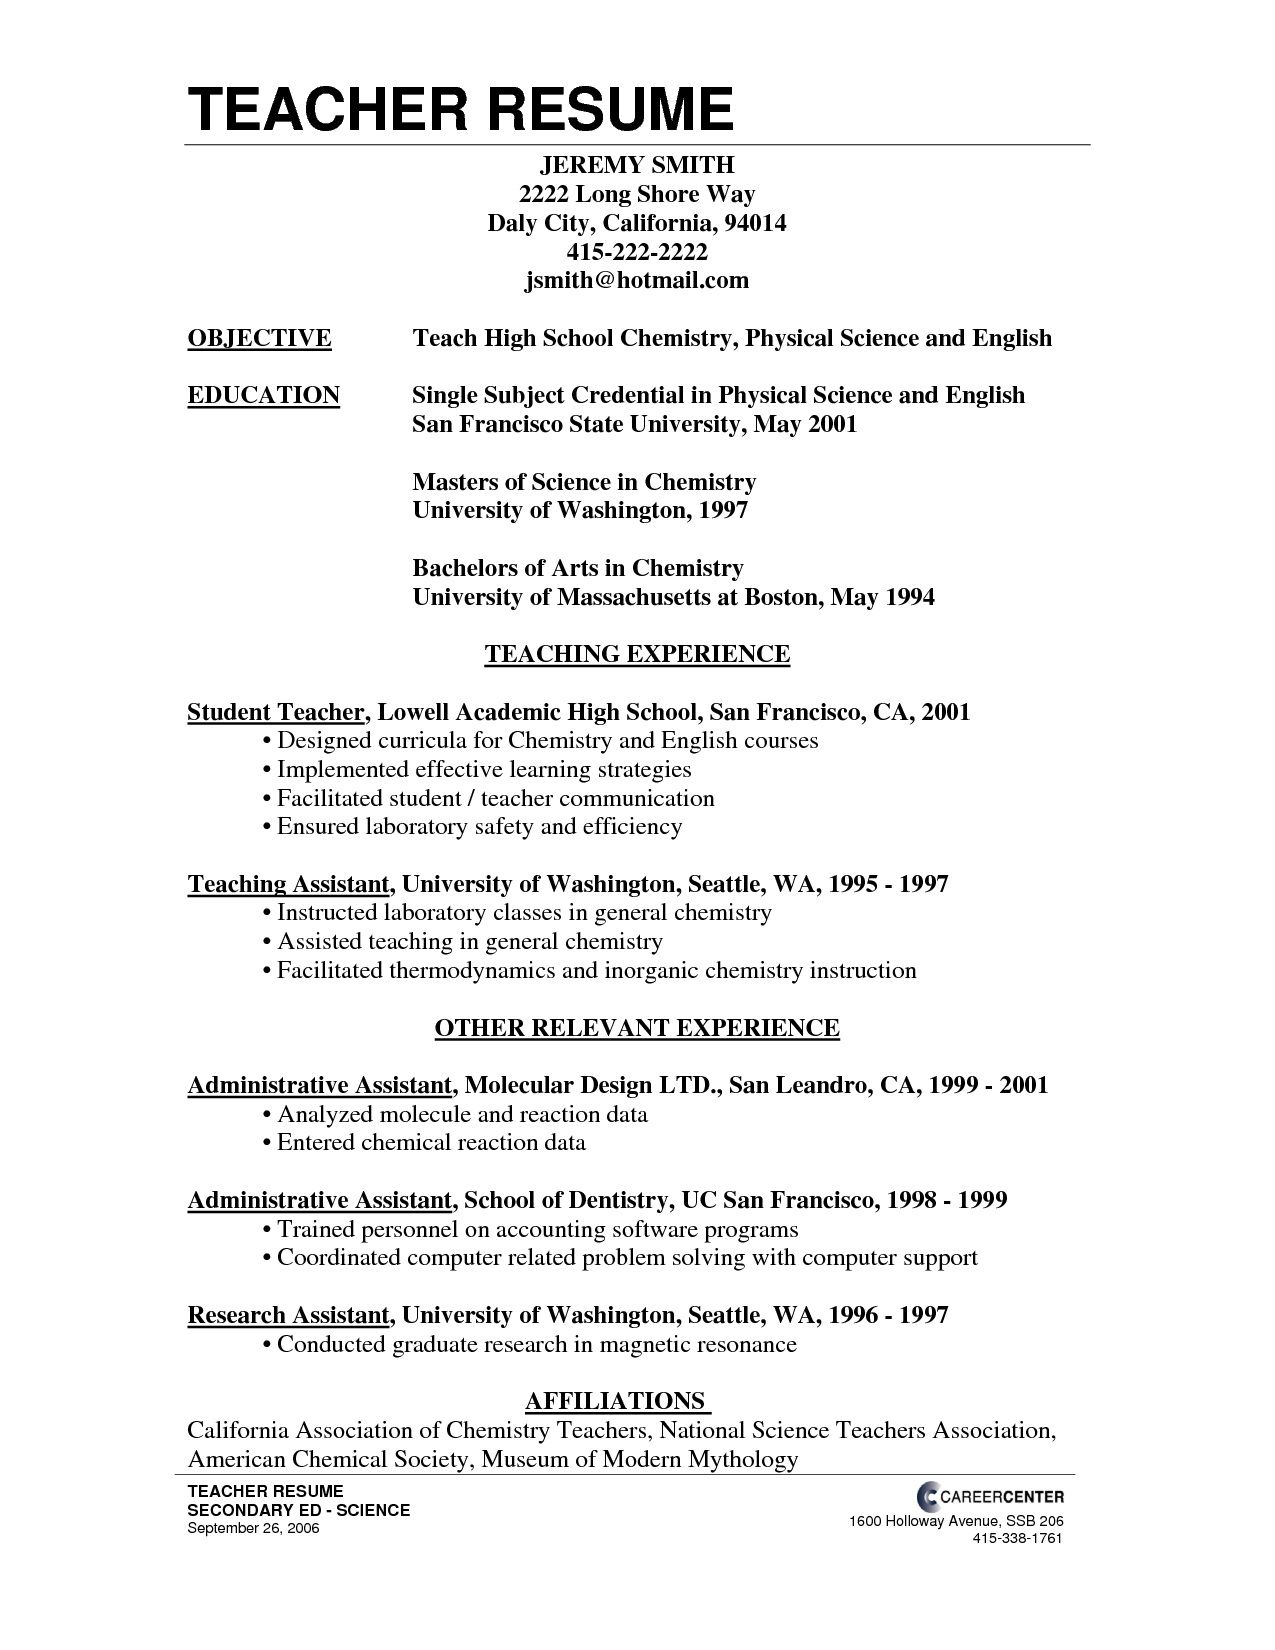 Resume Education Example High School Teacher Resume Http Jobresumesample